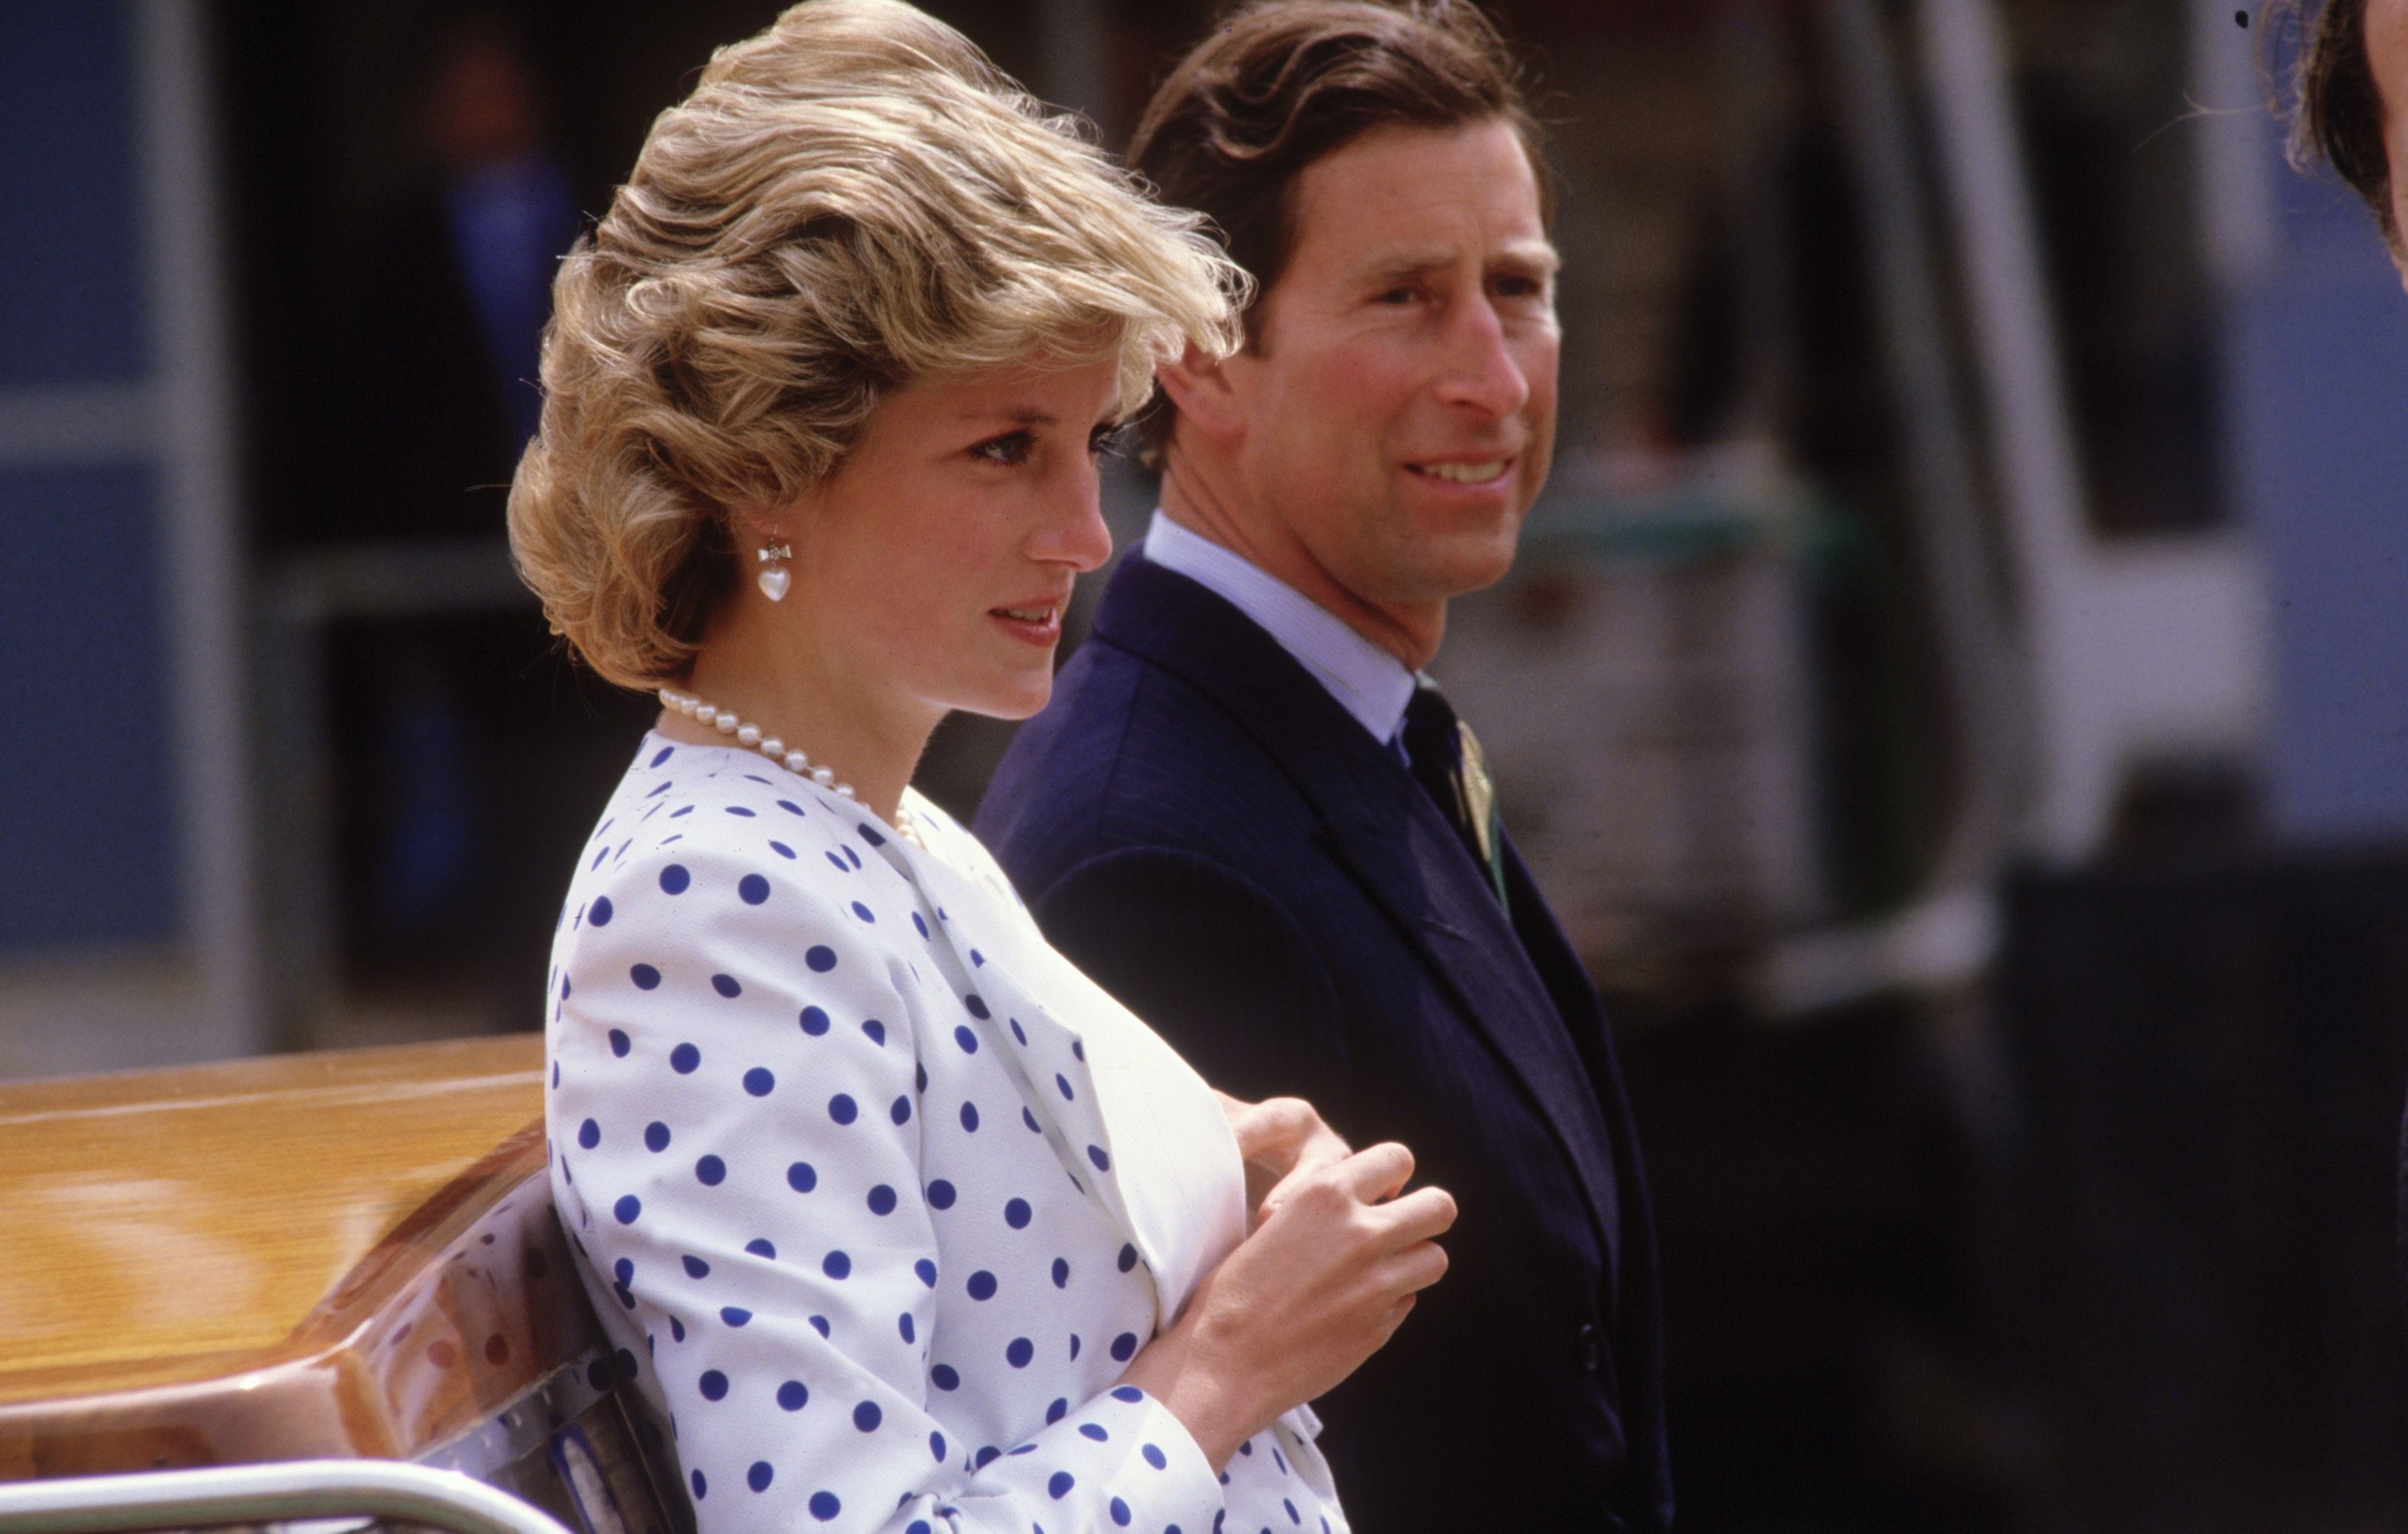 Diana Princess of Wales and Prince Charles travel by motor boat. | Source: Getty Images